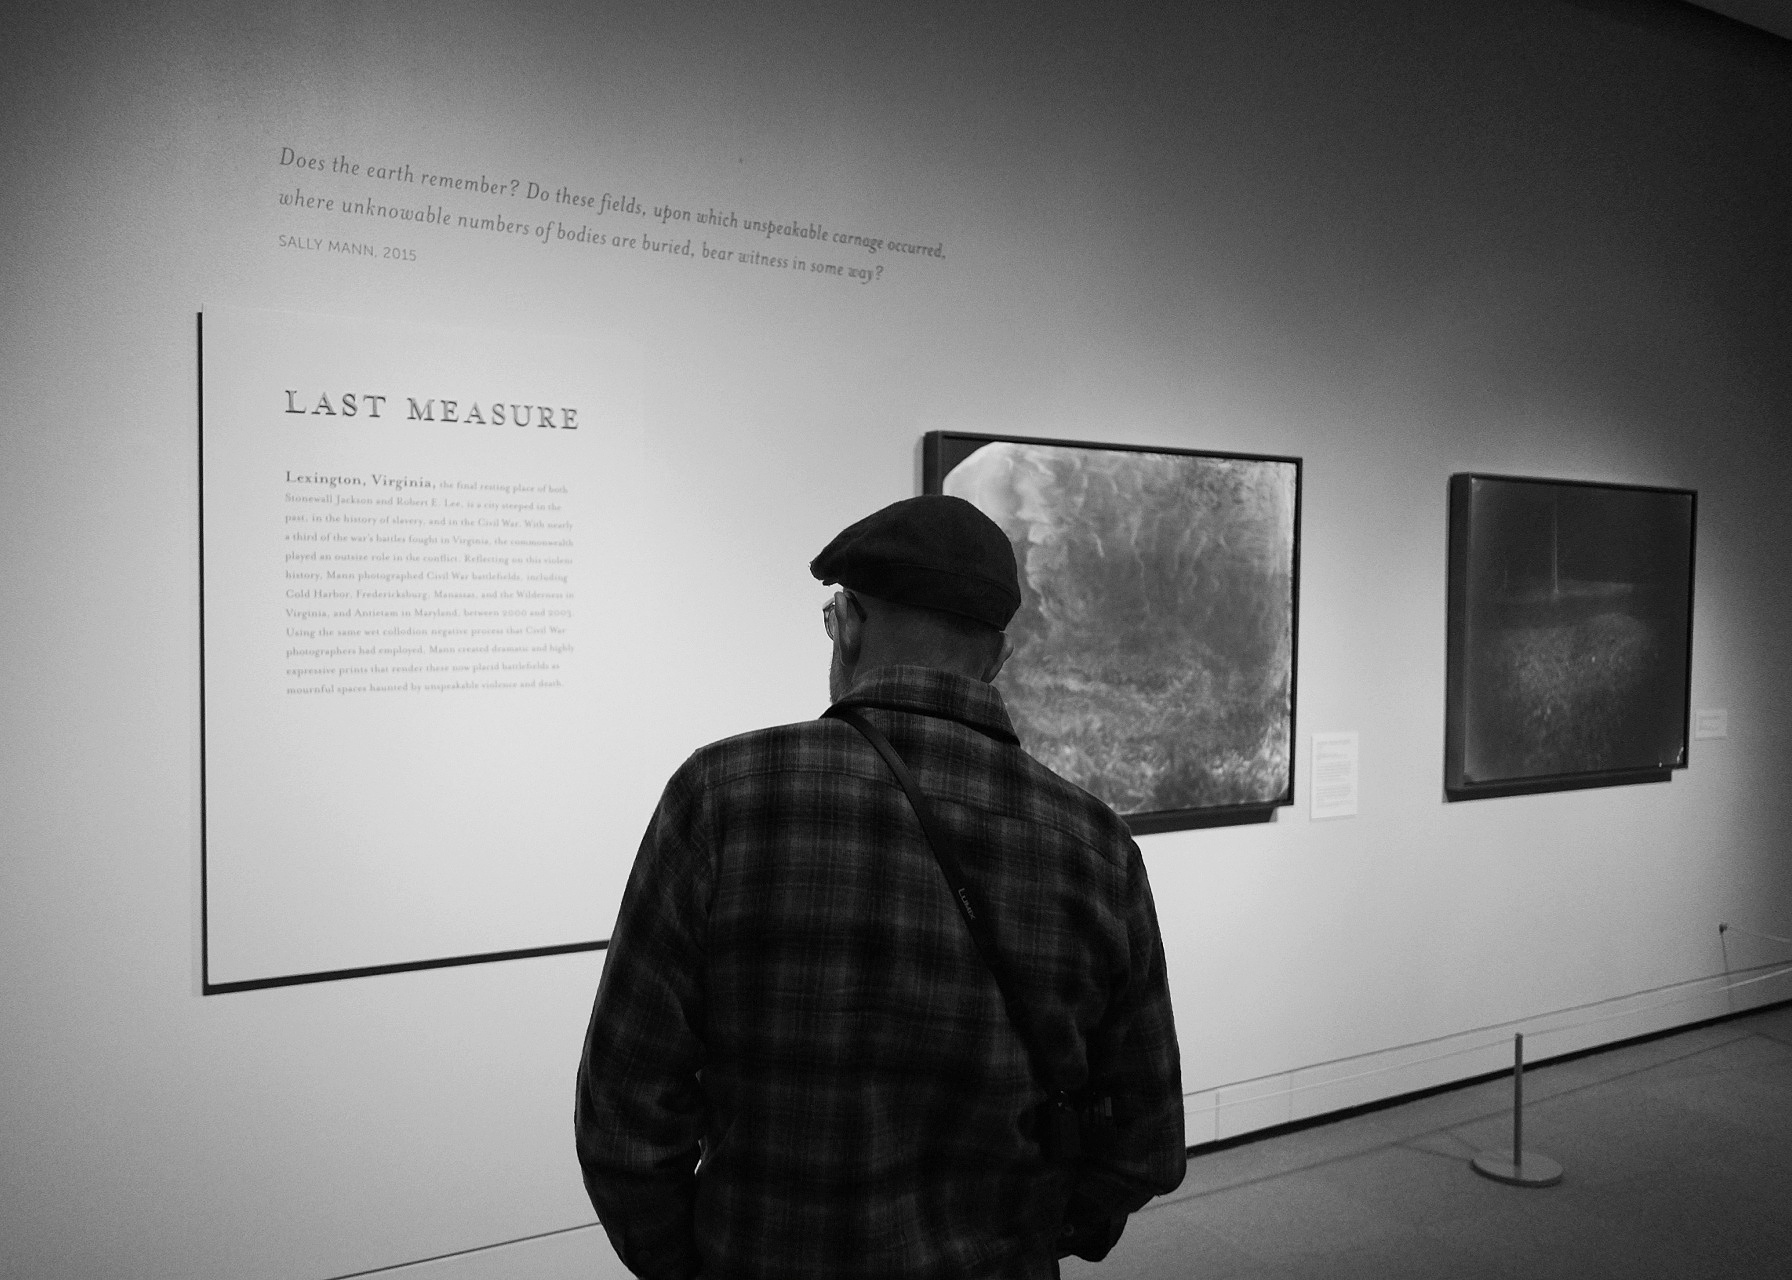 Last Measure: Does the earth remember? Do these fields, upon which unspeakable carnage occurred, where unknowable numbers of bodies are buried, bear witness in some way? — Sally Mann, 2015